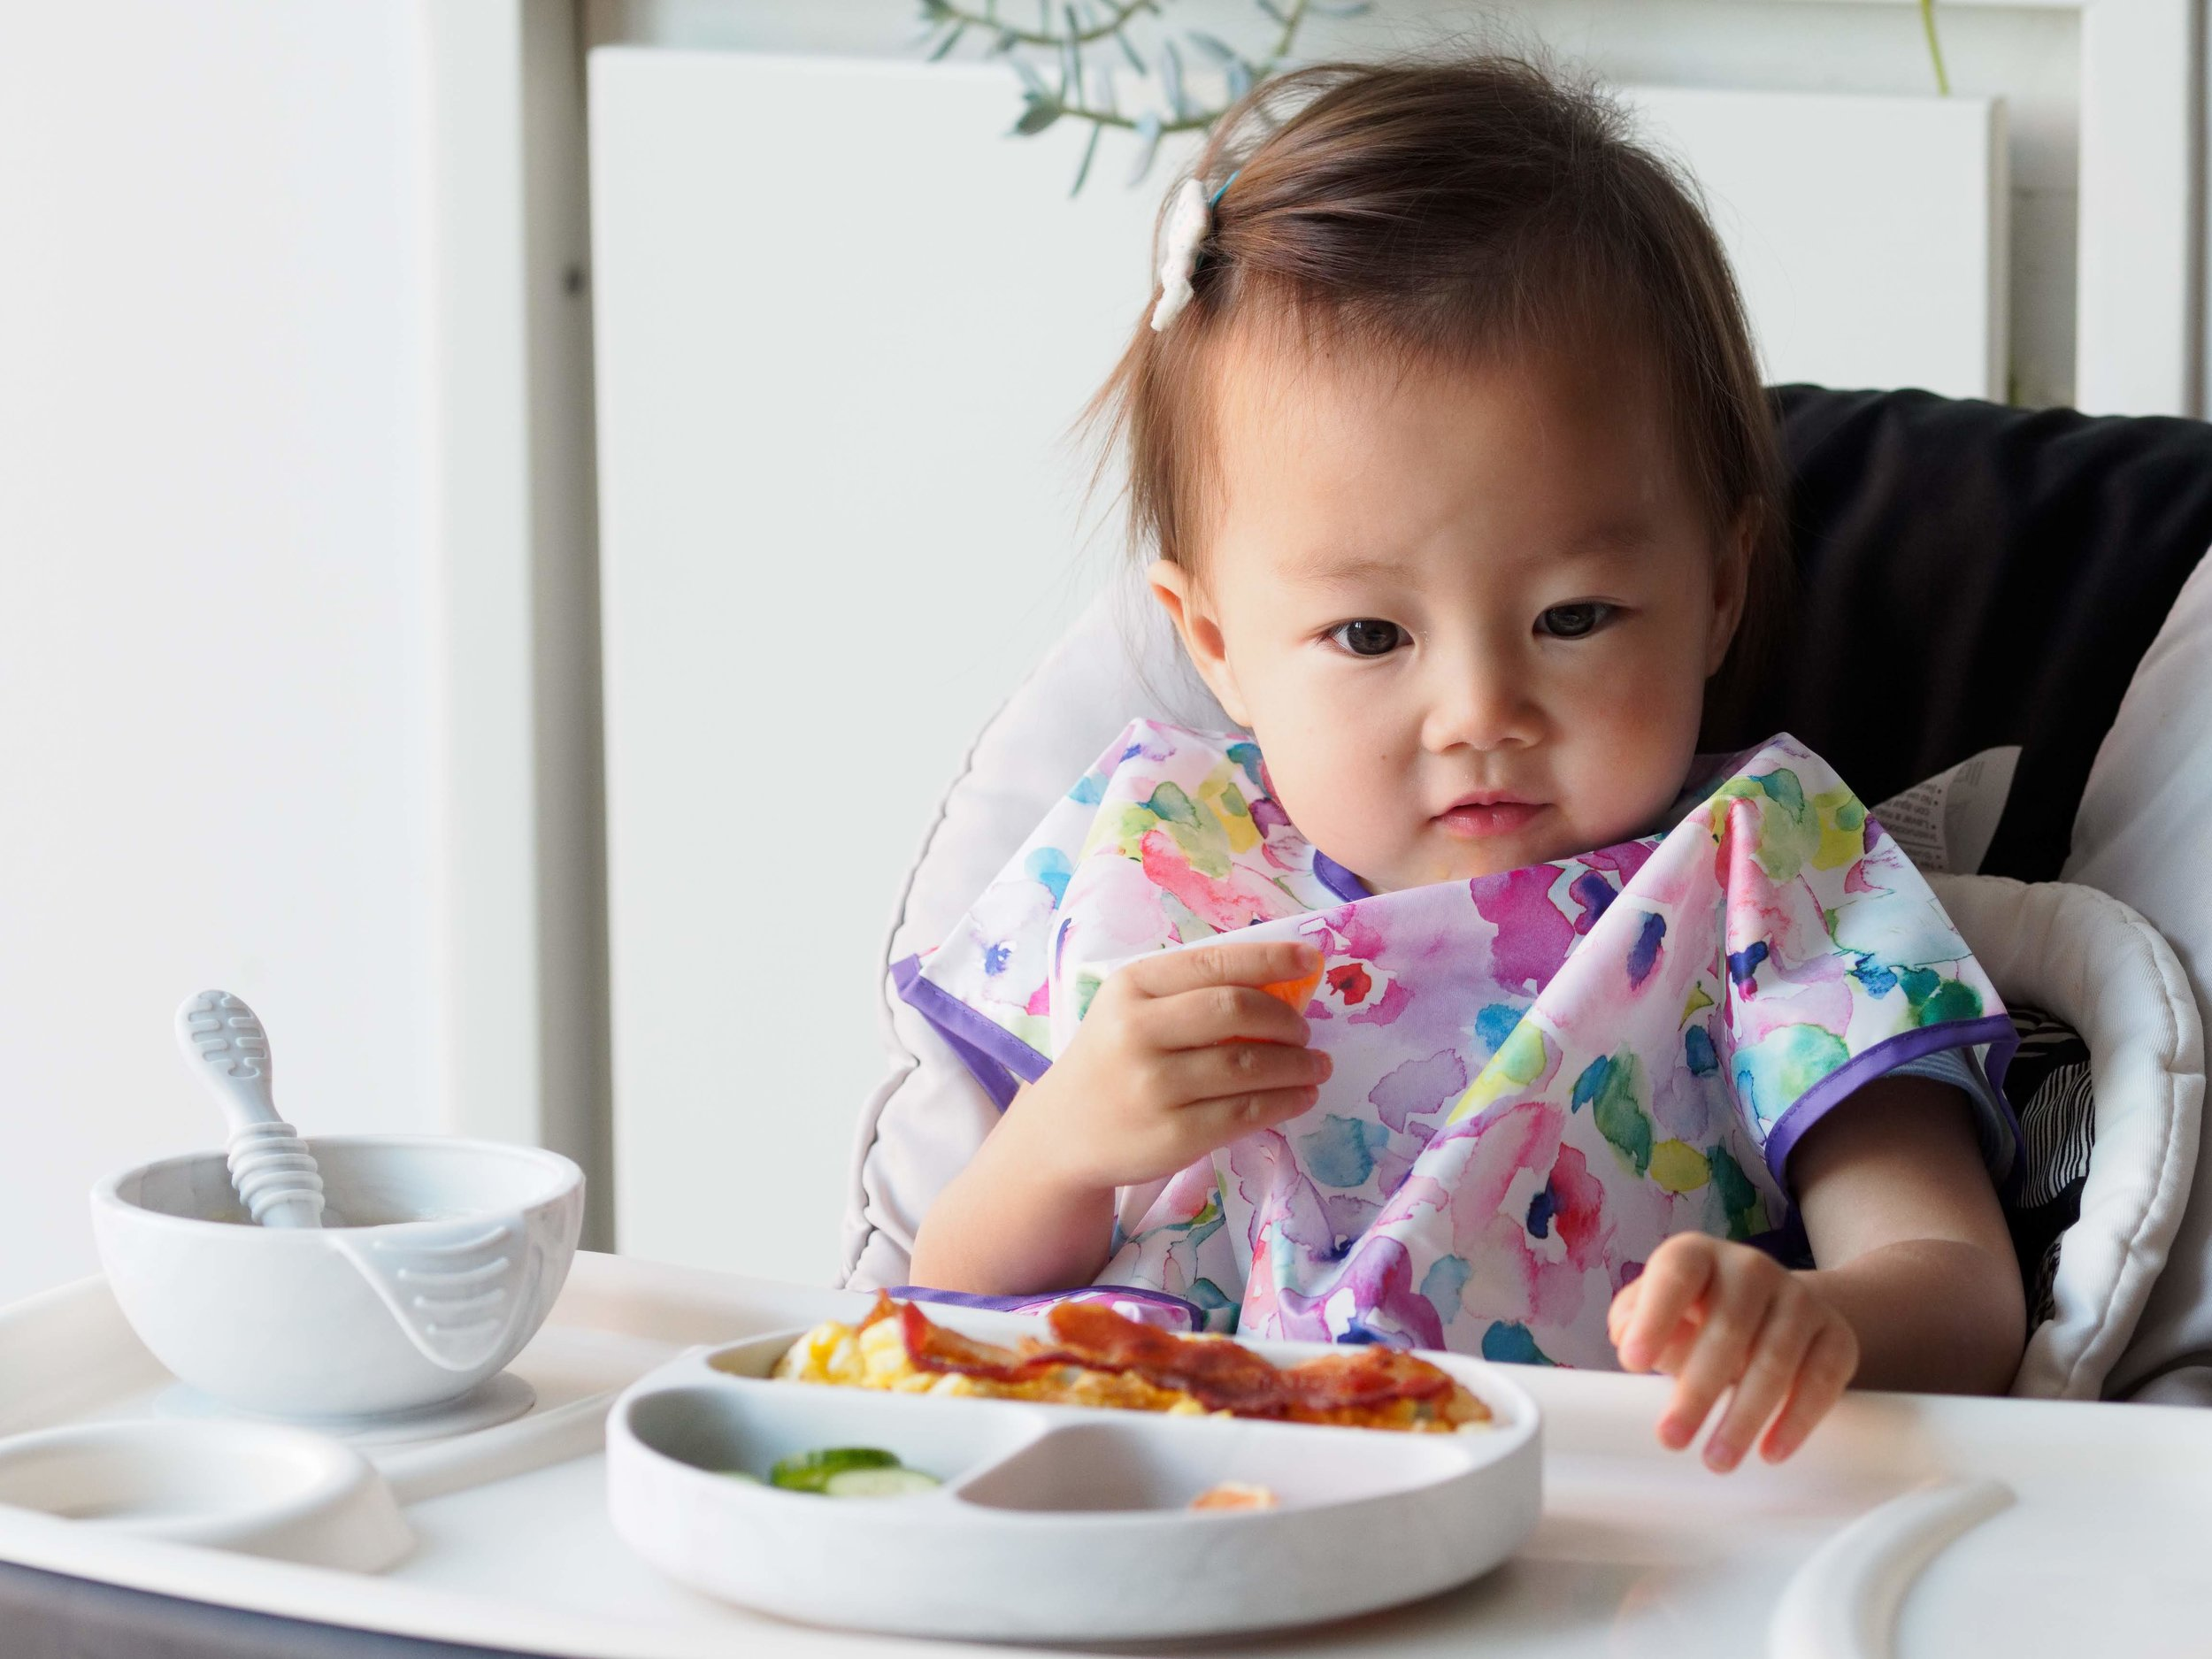 Jessica's daughter Max is pictured with Bumkins'    Junior Bib    in Watercolor,    Silicone First Feeding Set    in Marble, and    Silicone Grip Dish    in Marble.